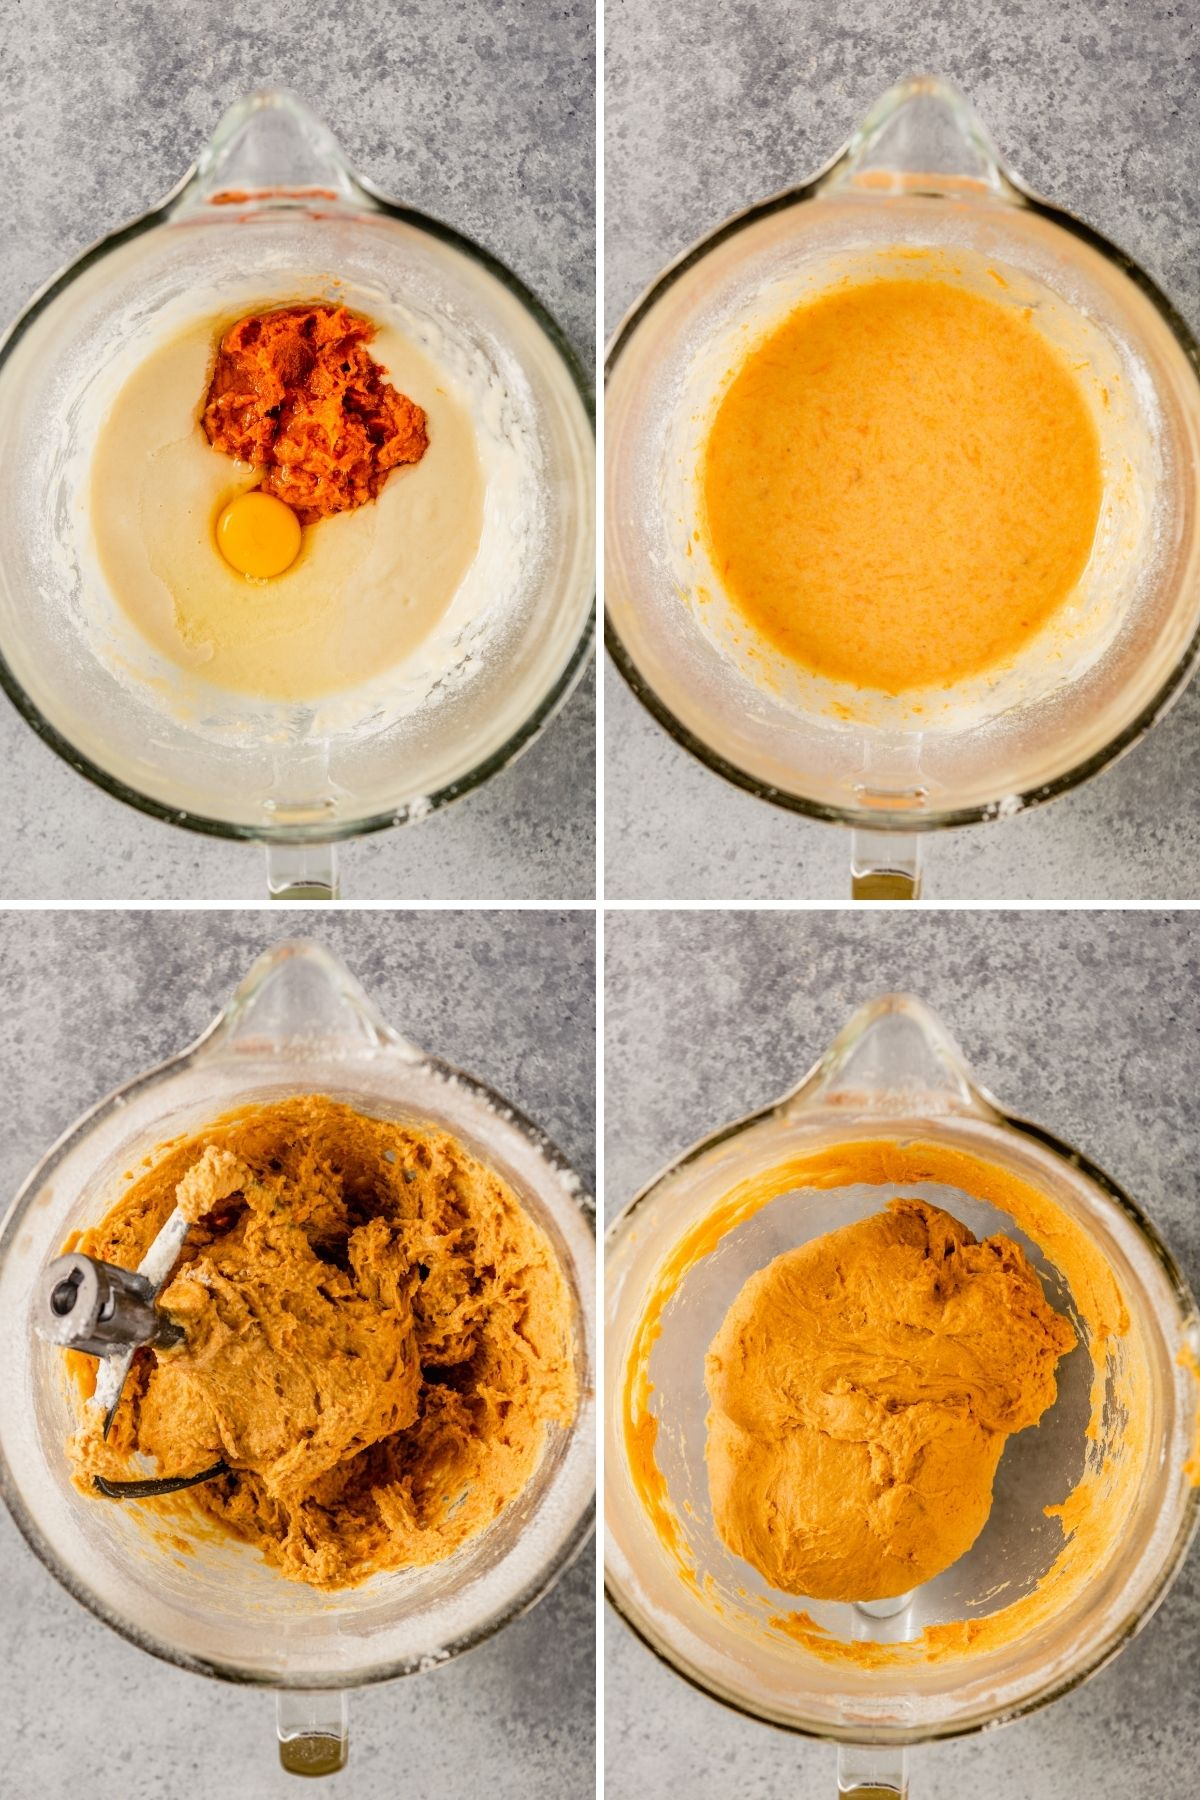 grid of four images showing eggs and sweet potato mash added to batter, an orange batter, mixed brea dough and a kneaded orange bread dough